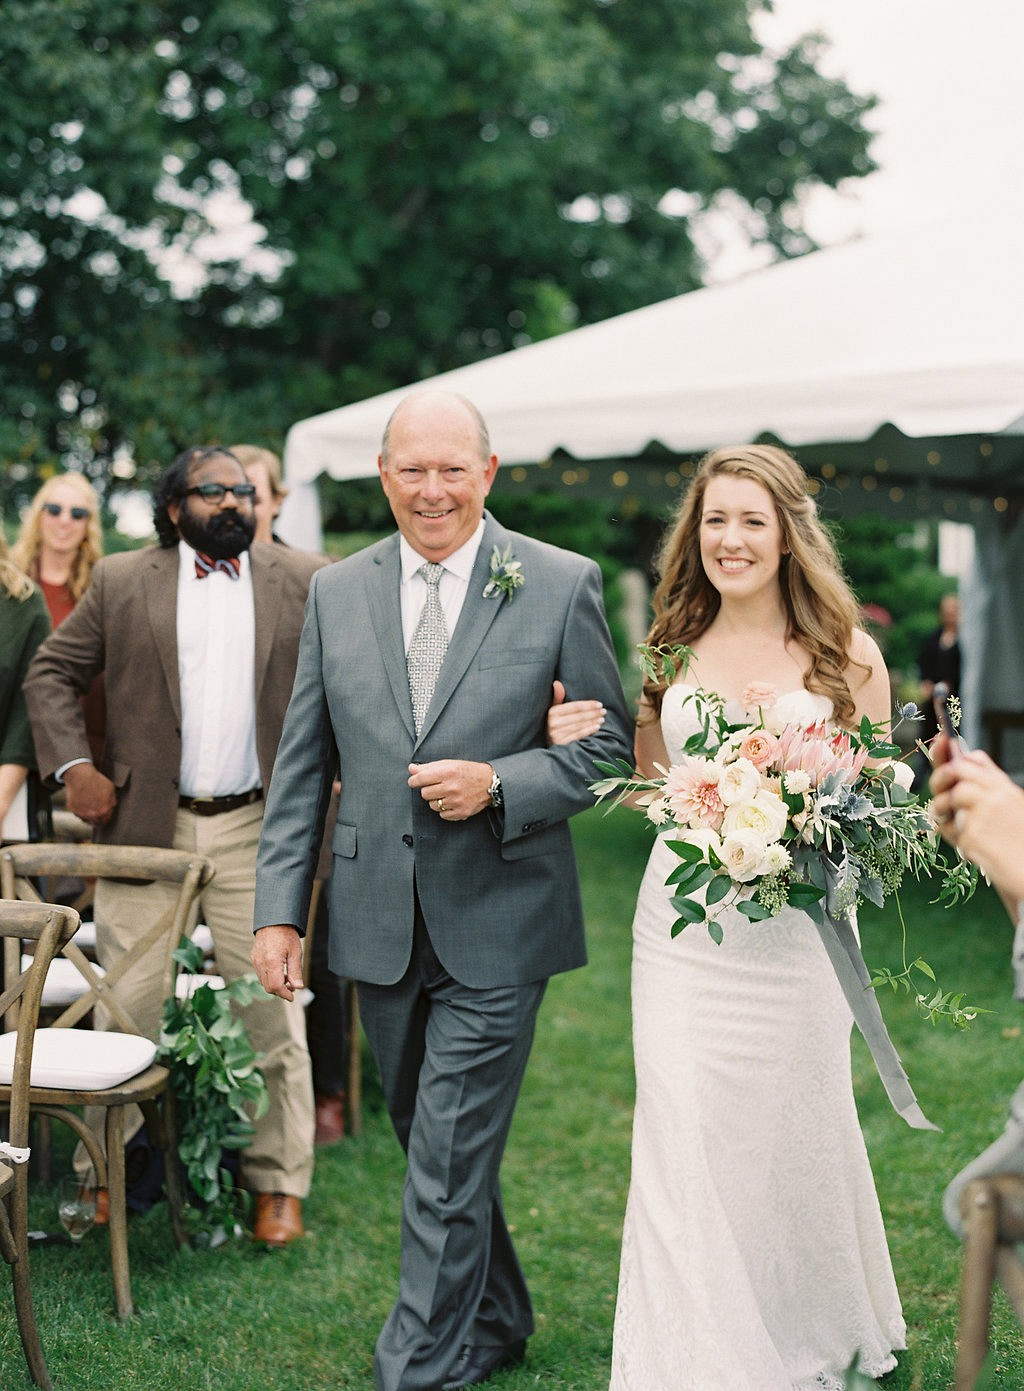 Kate and Cooper's Garden Wedding in Neutrals